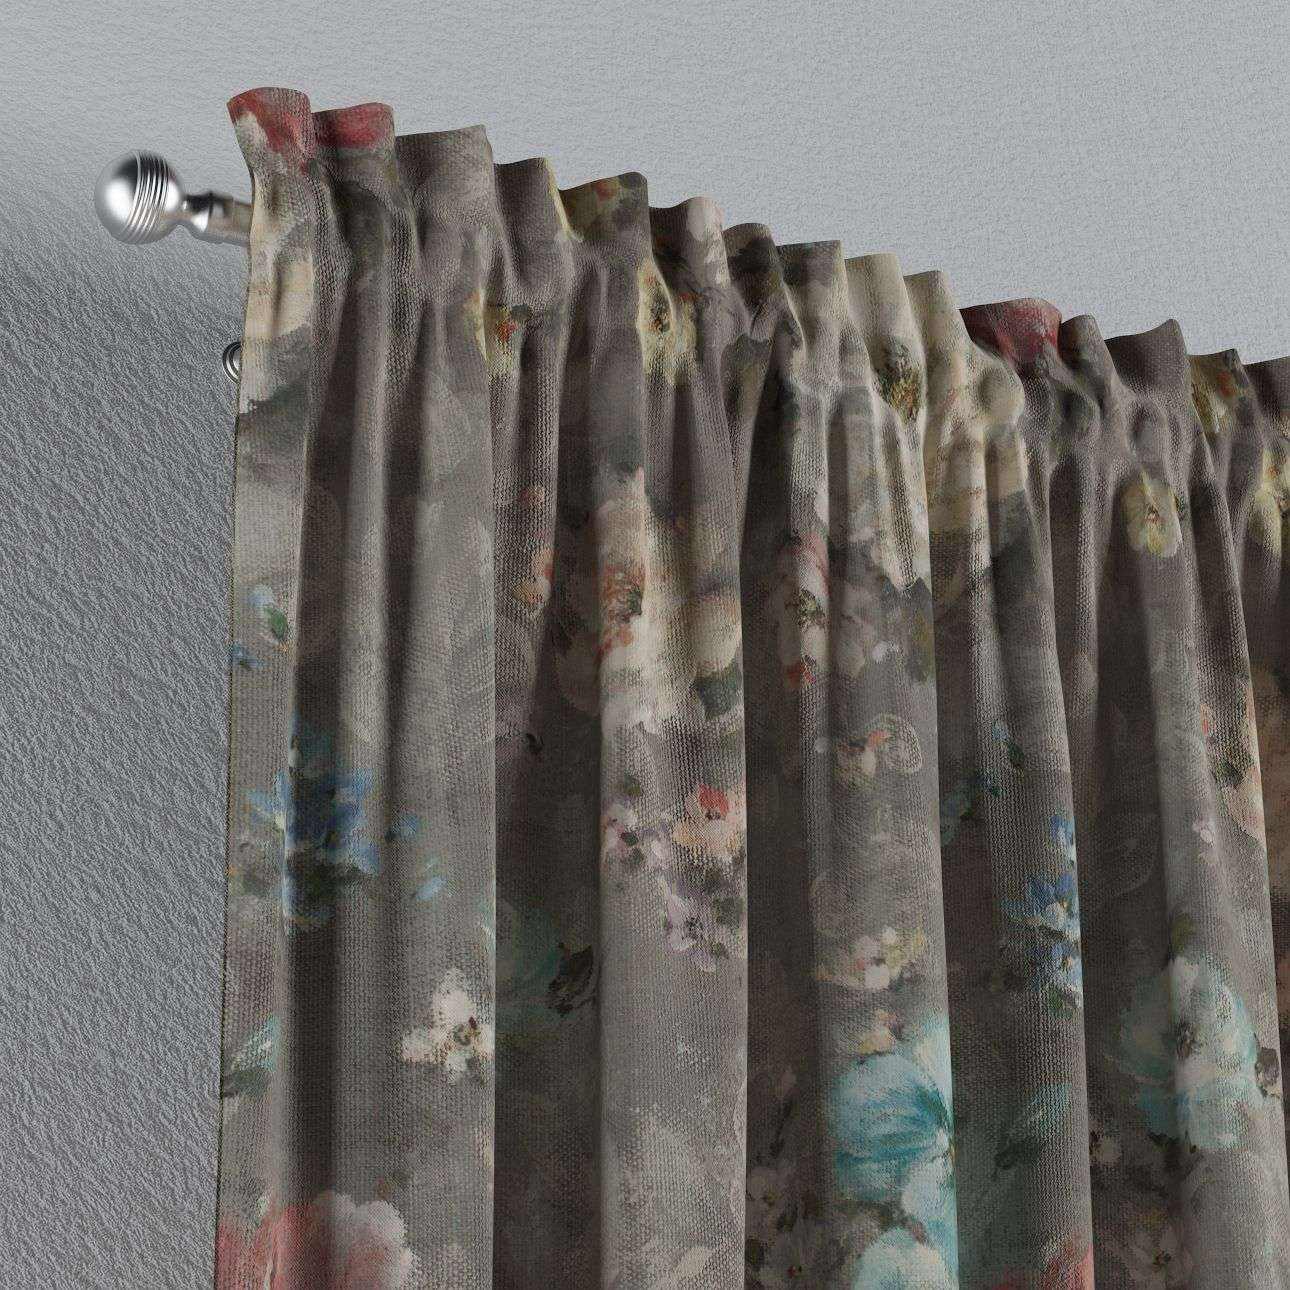 Slot and frill curtains in collection Monet, fabric: 137-81